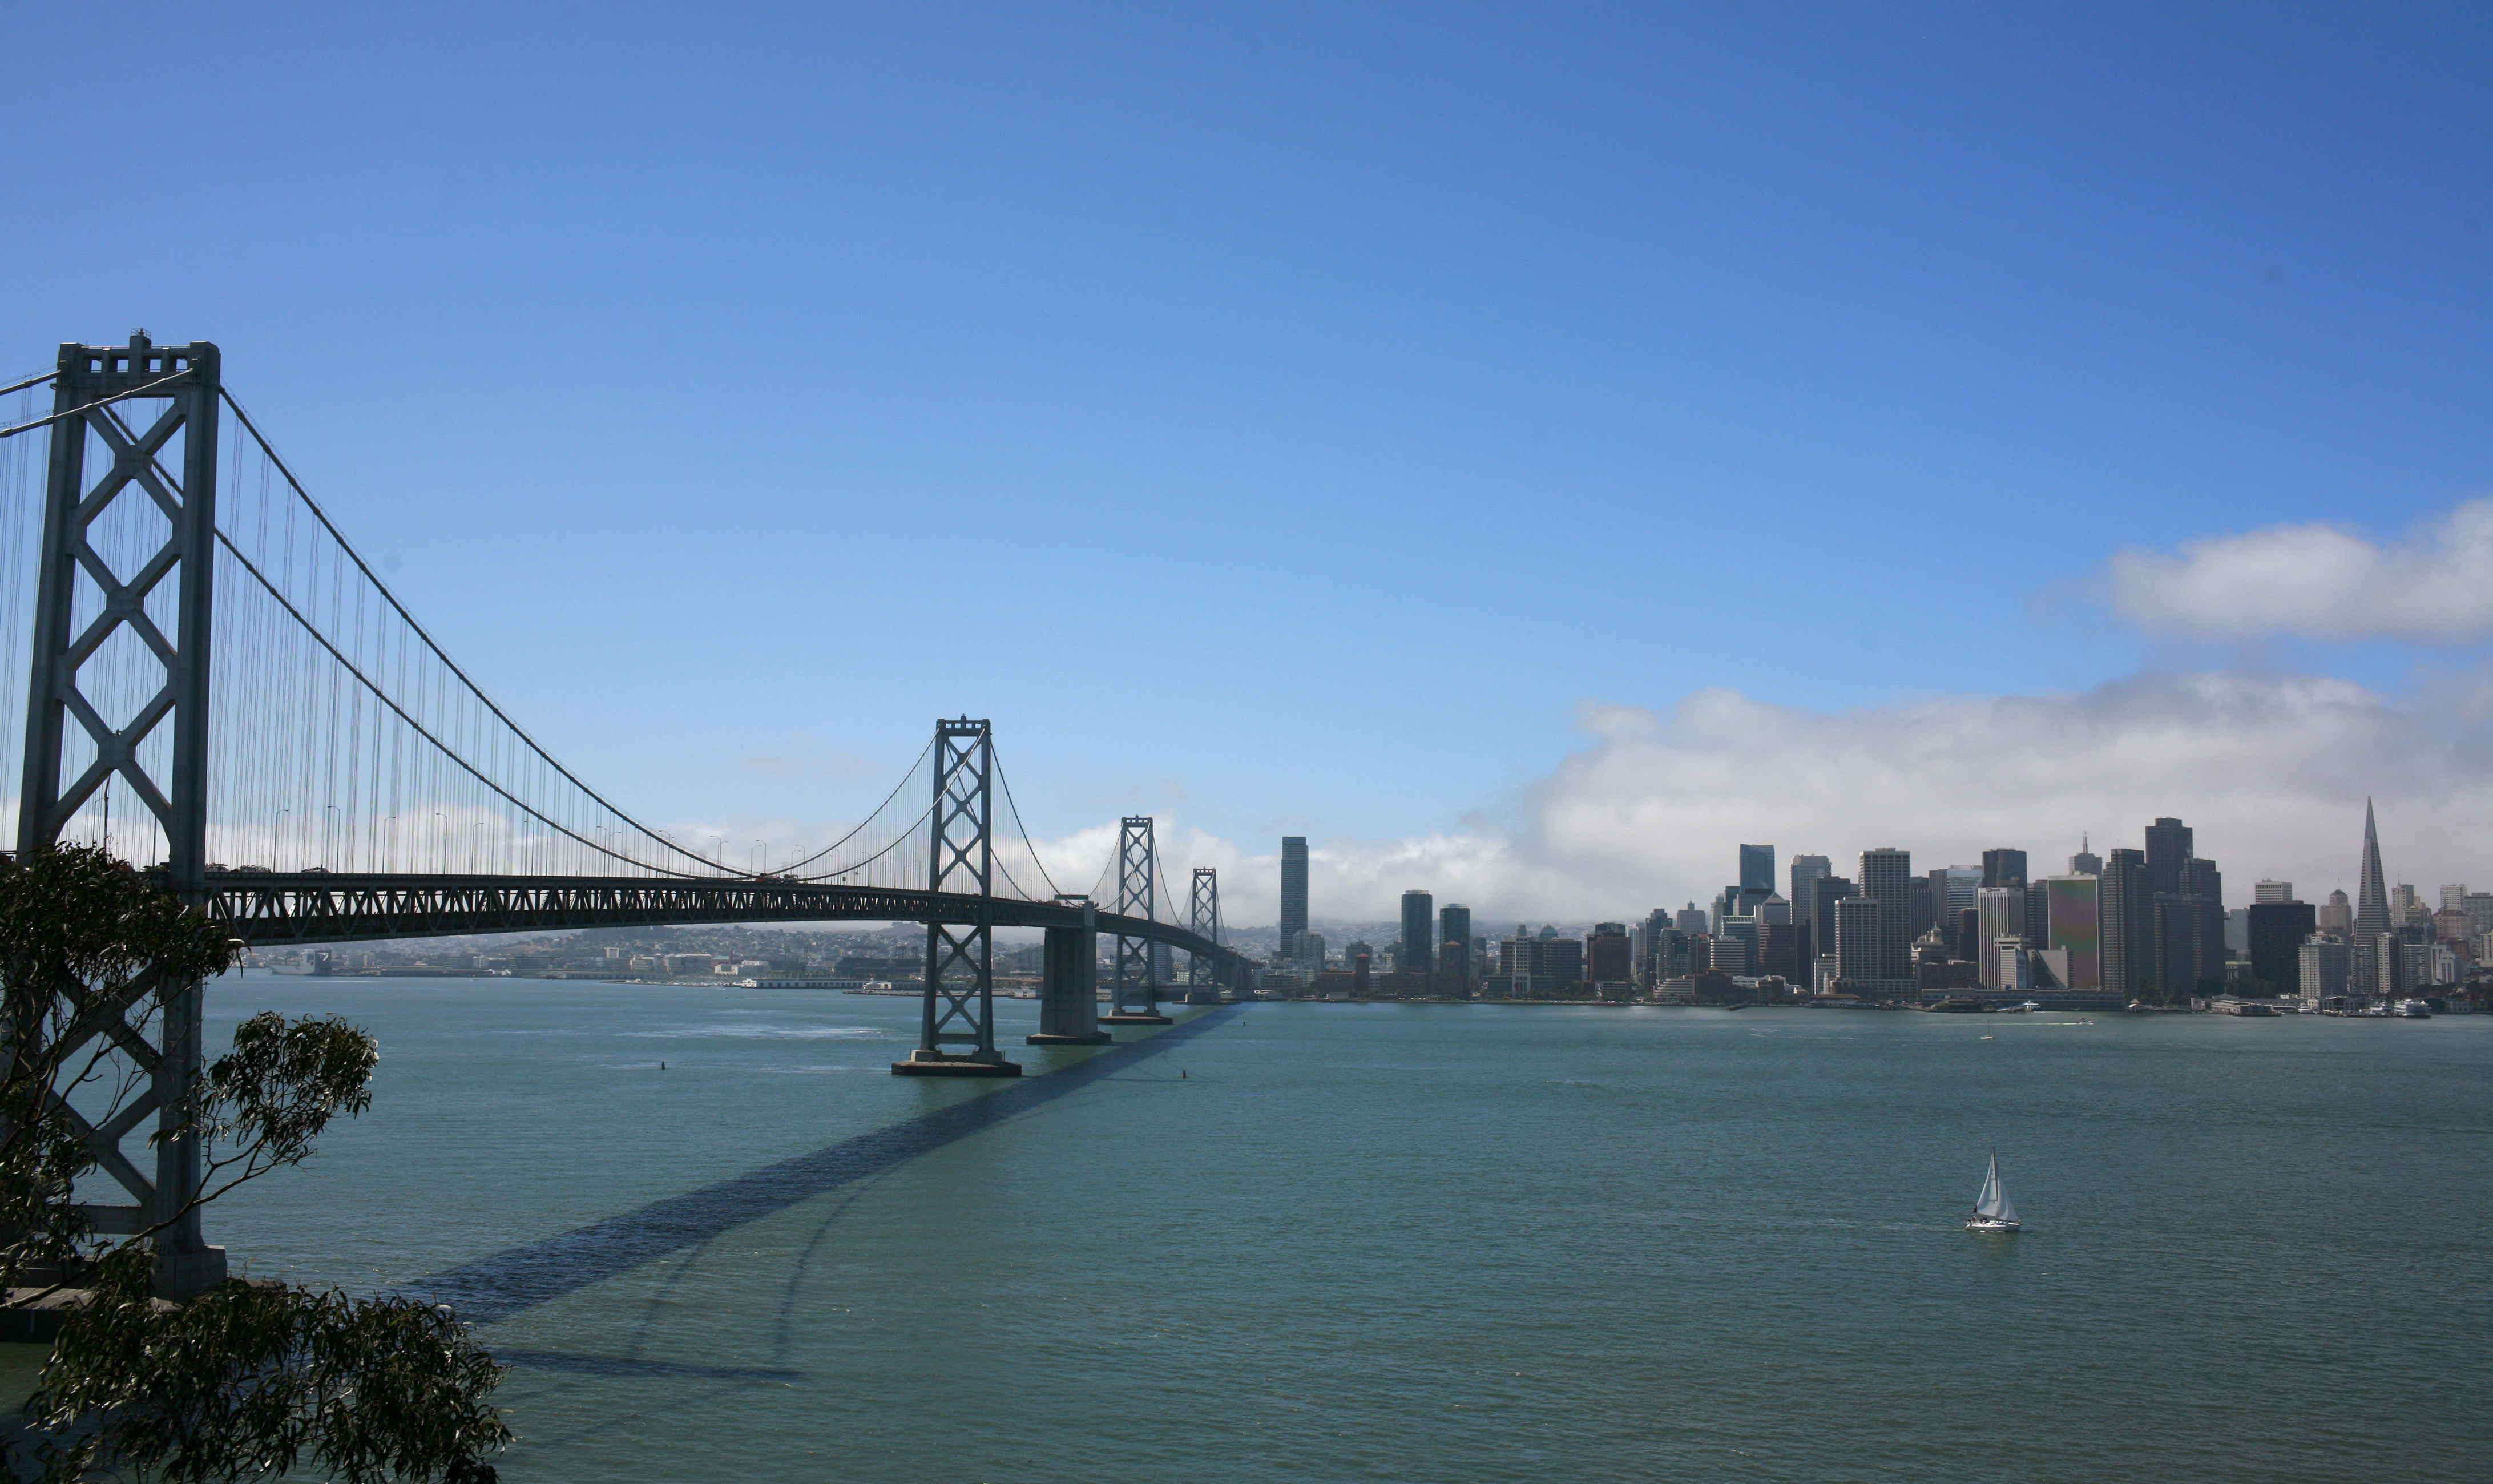 The Bay Bridge, temporarily closed to vehicular traffic, is shown in San Francisco, California September 4, 2009.  The span, undergoing a seismic retrofit, will be closed for four days over the Labor Day weekend when crews will cut out a 300-foot-long, 3,300 ton double-deck section of the bridge to make room for a 3,600 ton connector that will tie in the bridge to a detour. REUTERS/Robert Galbraith  (UNITED STATES SPORT SOCCER SOCIETY BUSINESS) - RTR27GCC